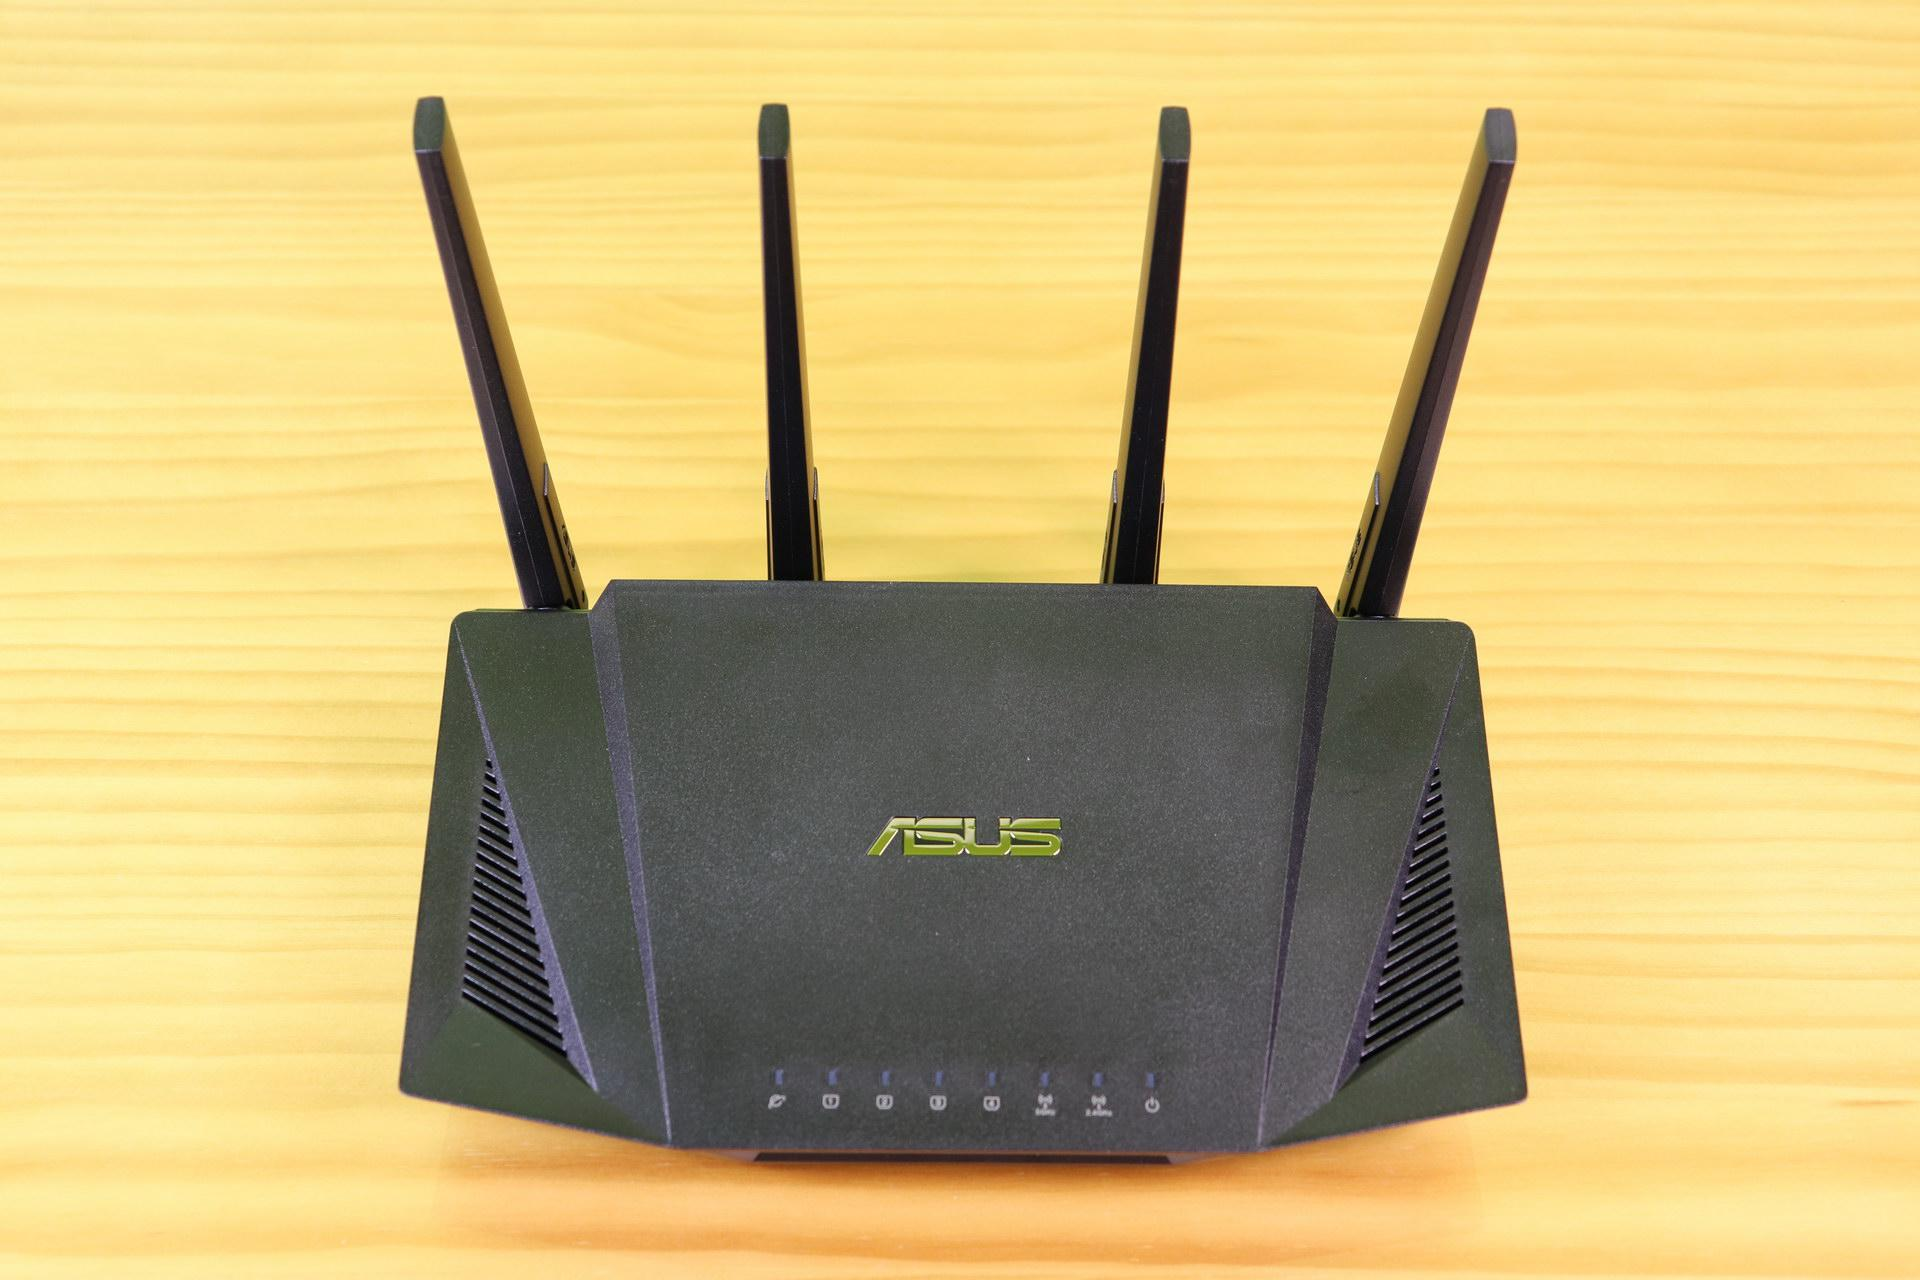 Top area of the ASUS RT-AX58U router in detail